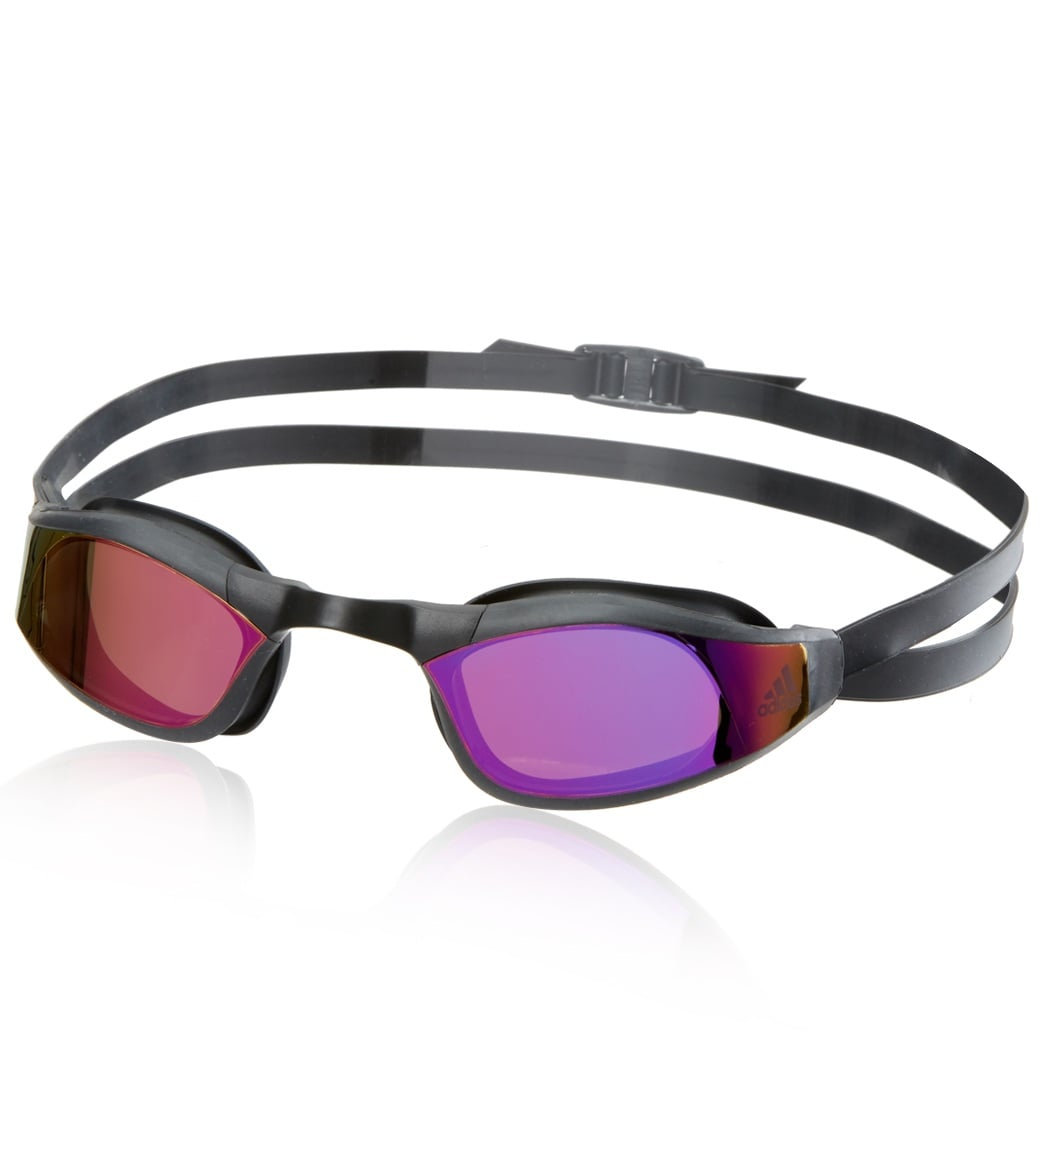 3920494b4e Adidas Persistar Race Mirrored Goggle at SwimOutlet.com